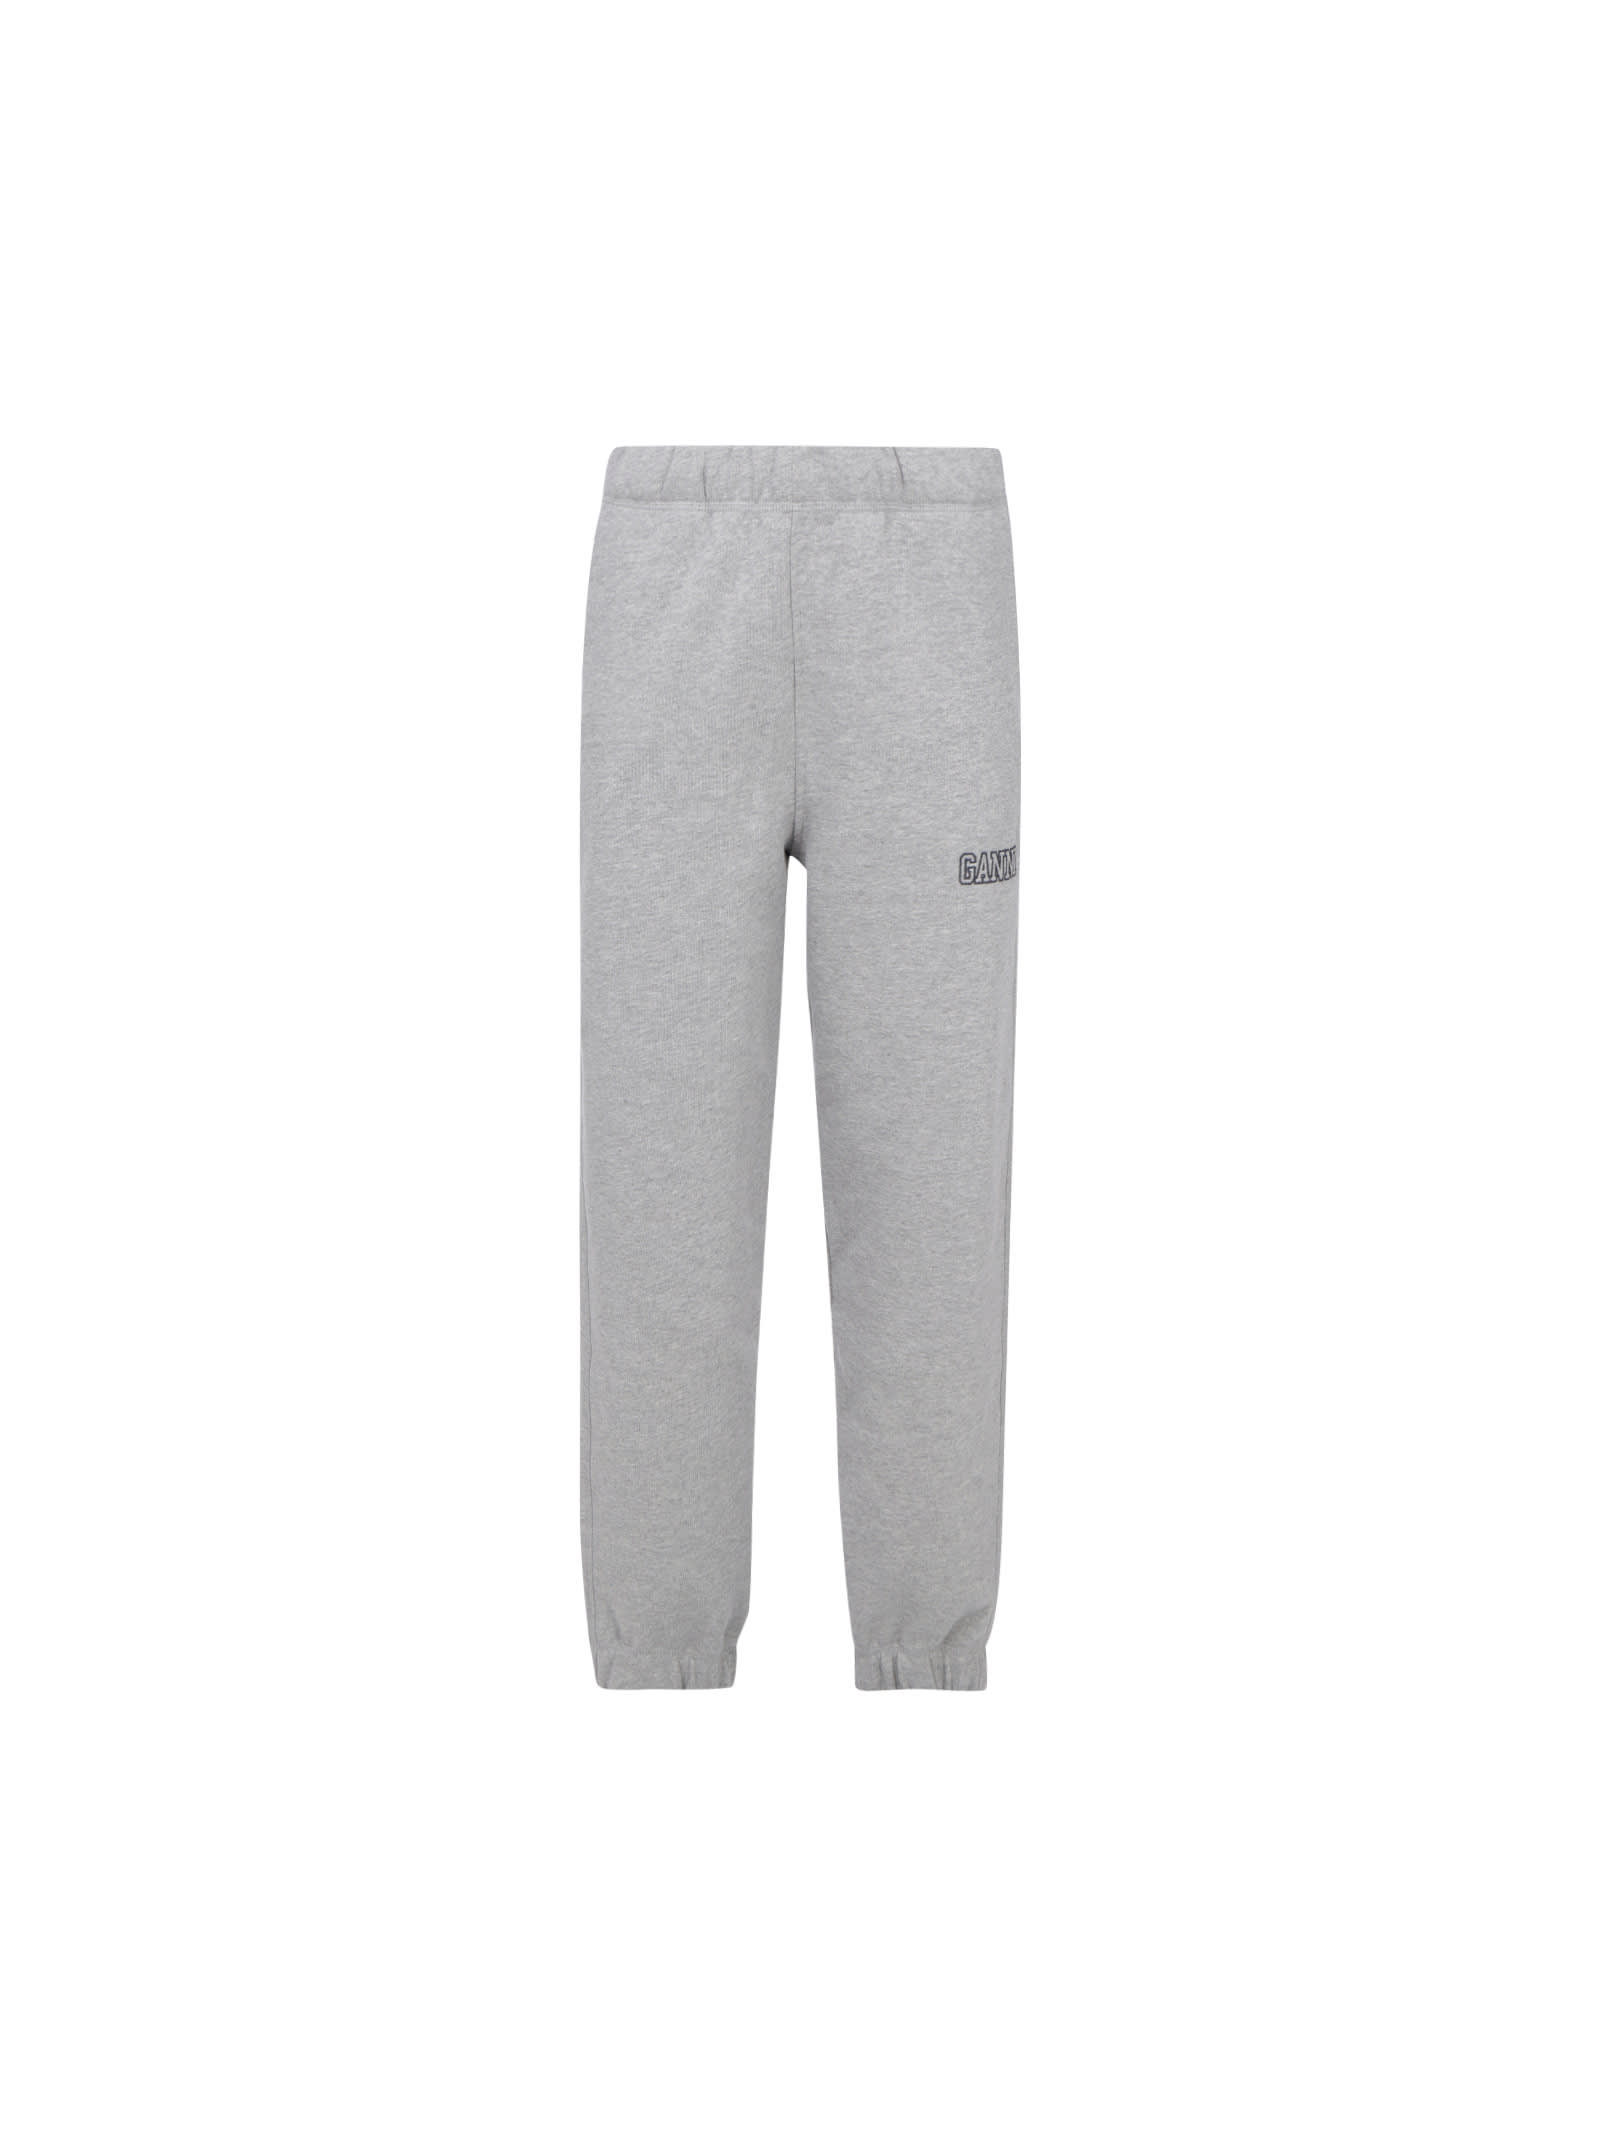 Ganni Cottons SWEATPANTS